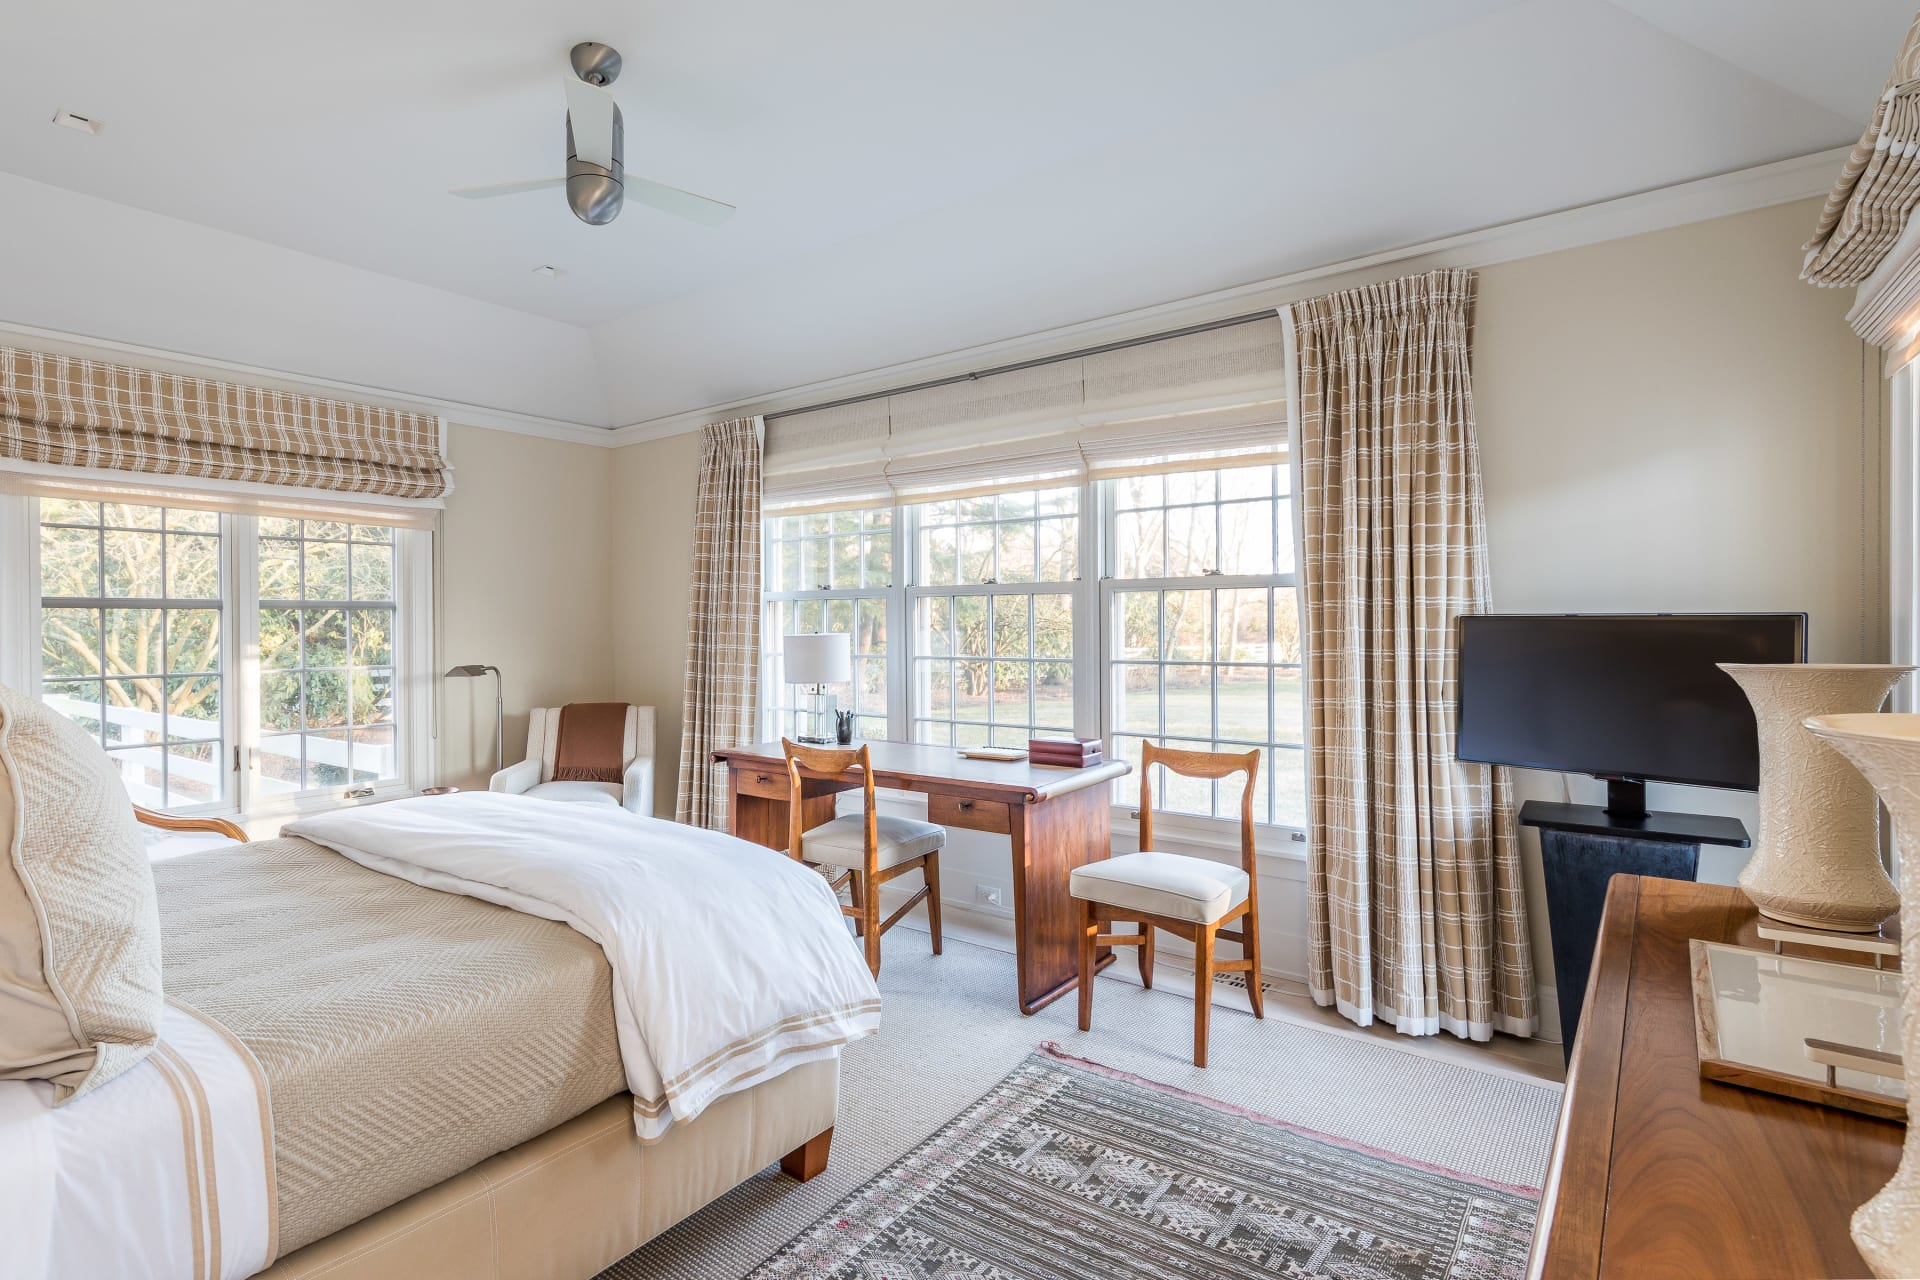 Beautifully Designed on Large Private Property Close to Village